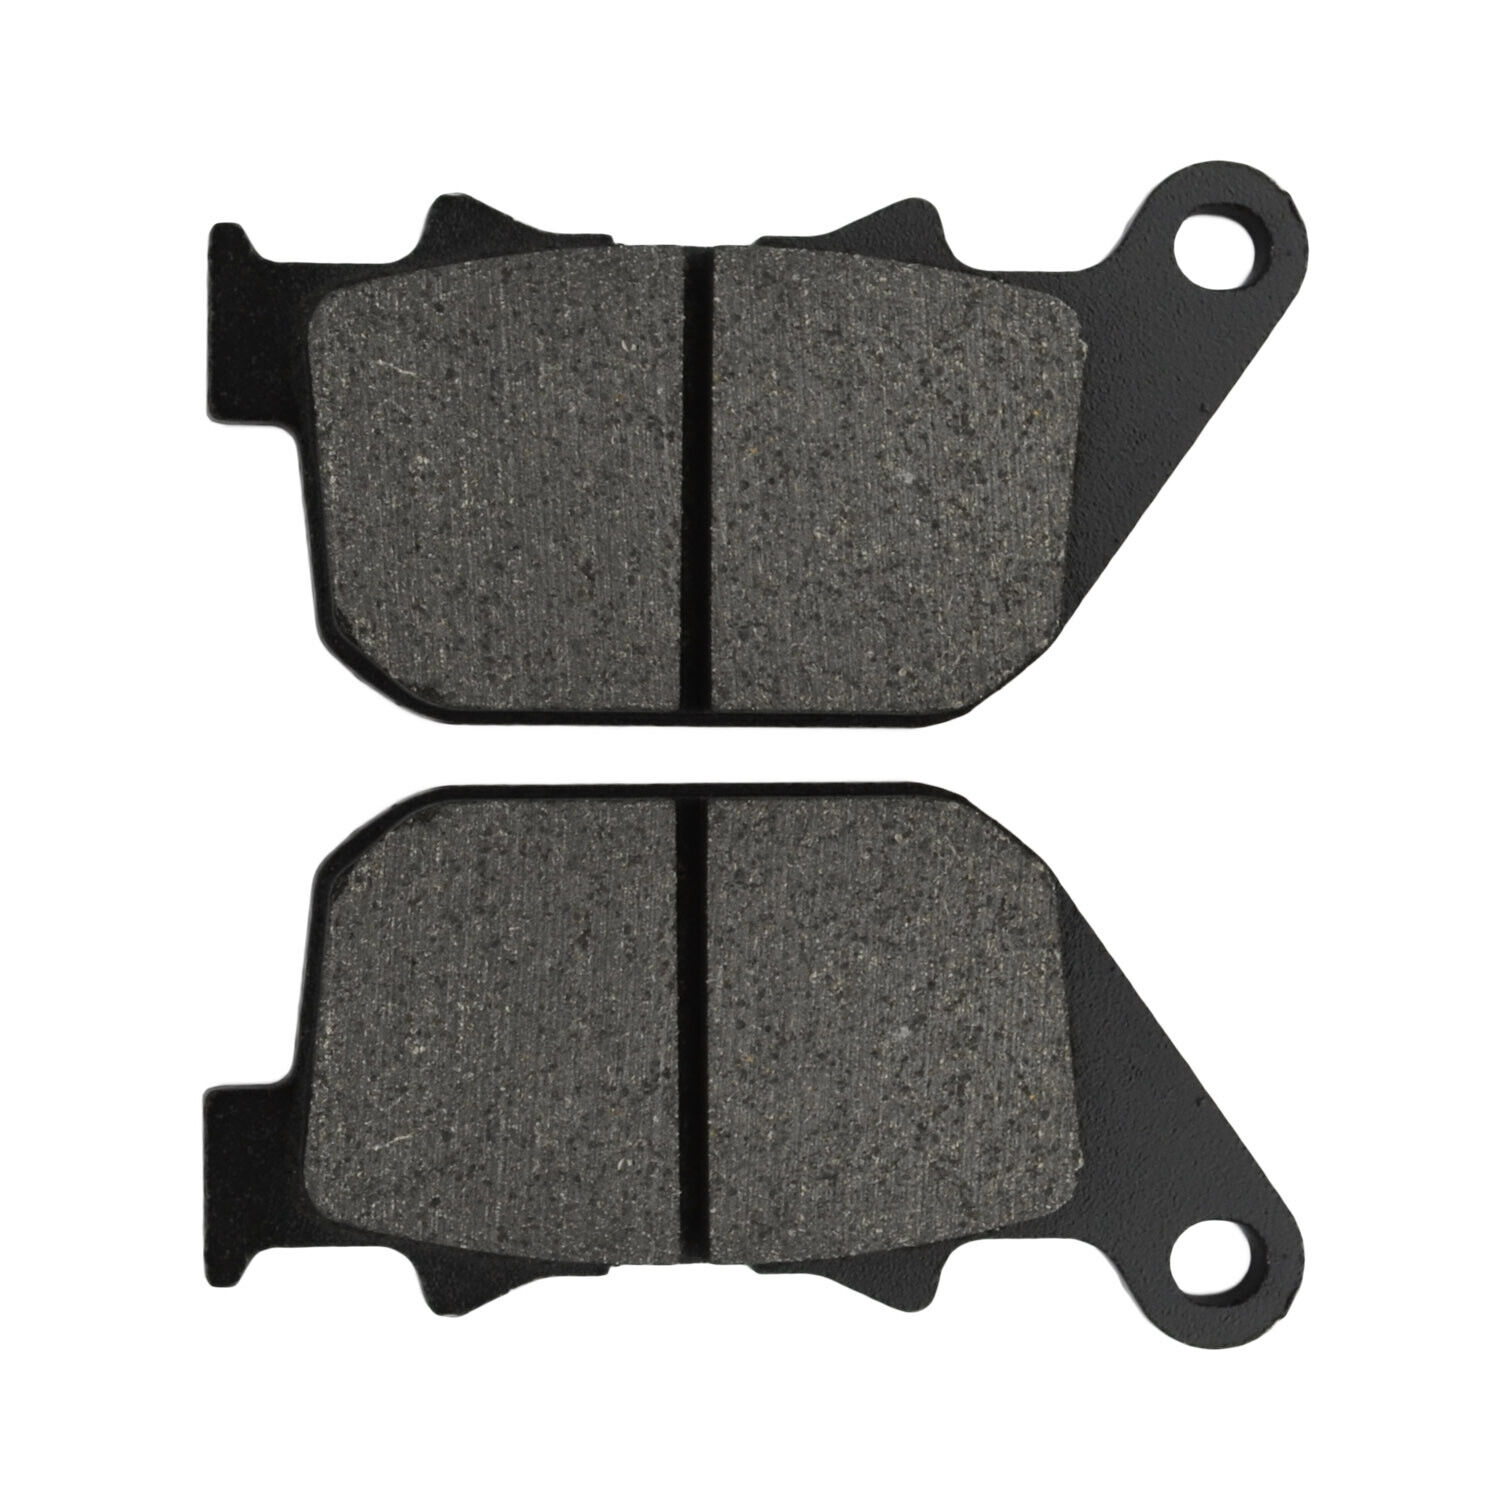 Harley Front Brake Disc Pads Sportster Series XL 50 XL 883 XL 1200 2004-2014